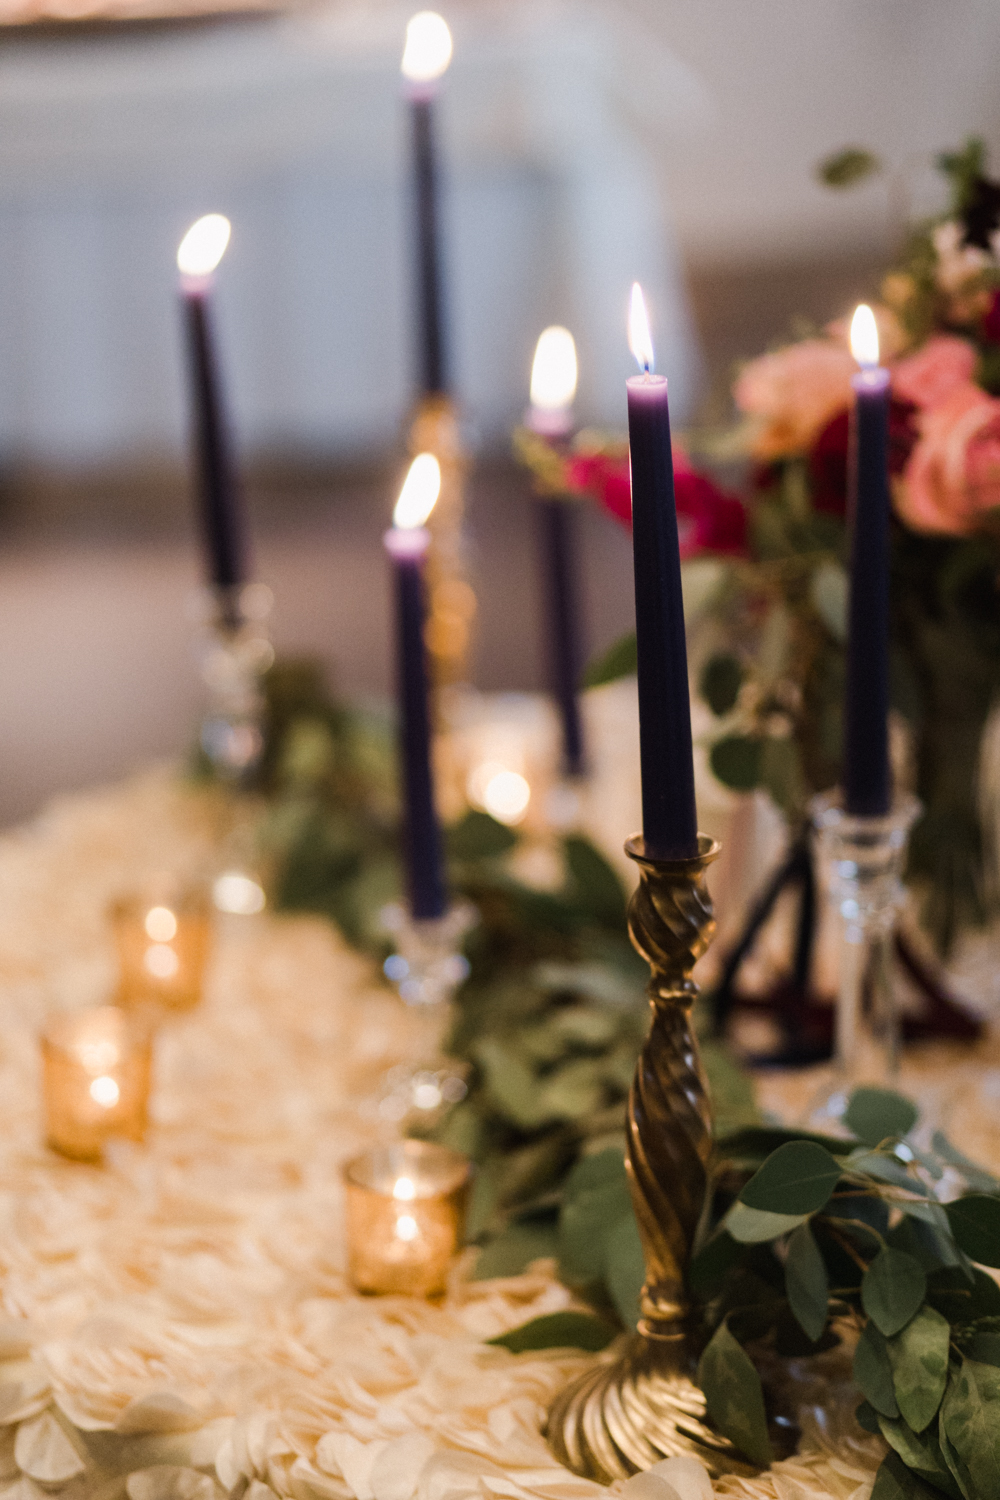 Nave_Candles_Mixed_Candlesticks.jpg